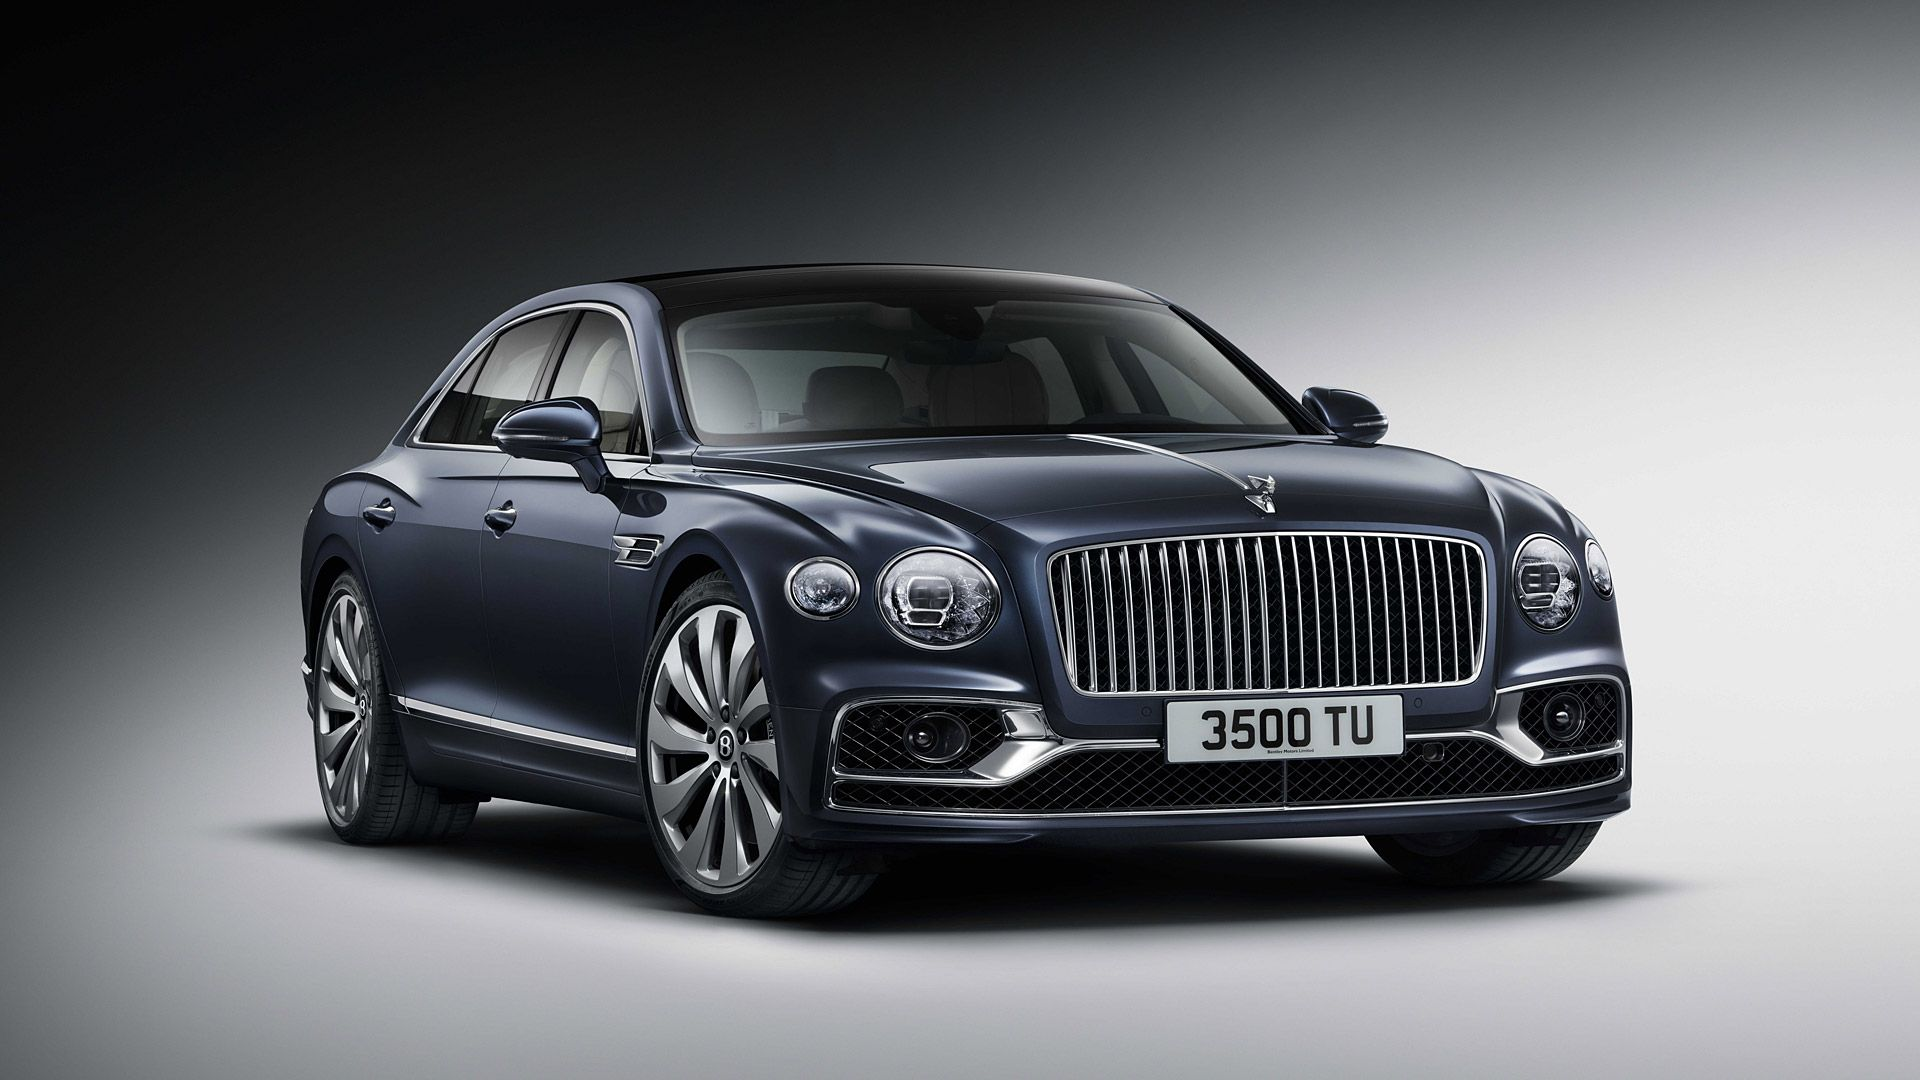 The Third Generation Of Bentley S Flying Spur Super Saloon Has